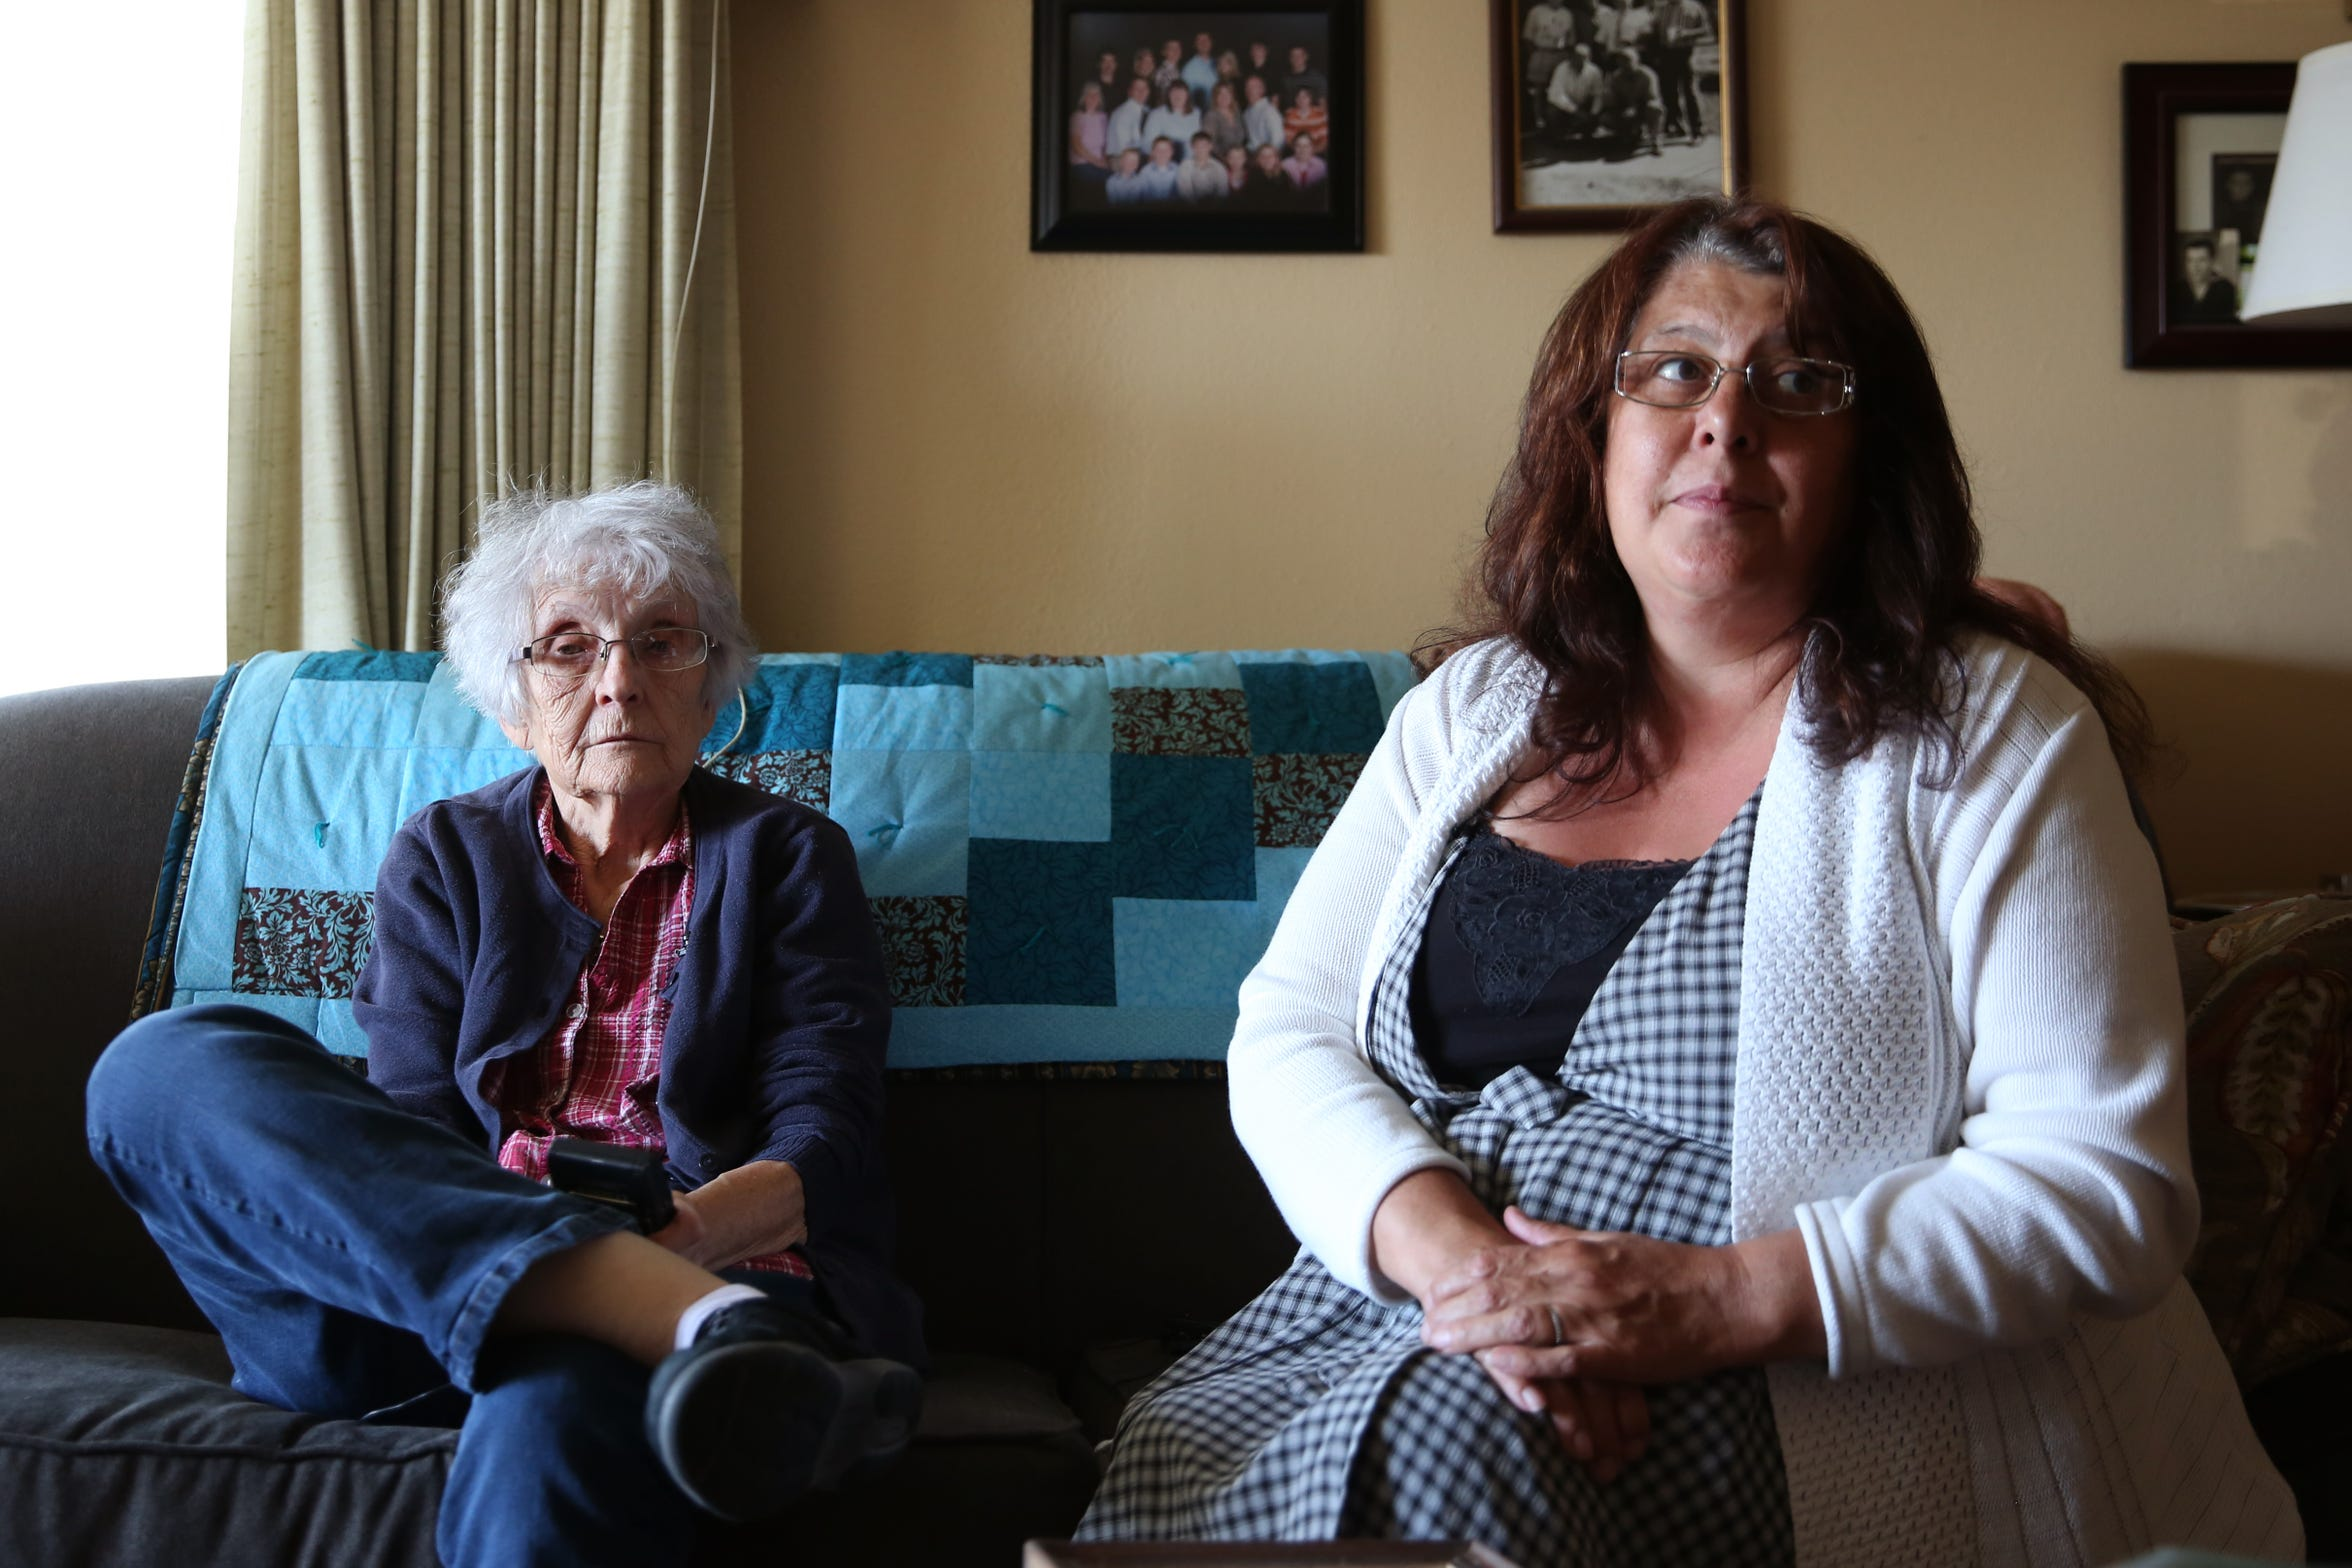 Vicki Morace, left, and her daughter Sharmon Cook-Wright remember their son and brother, respectively, George Cook in Morace's Salem home on Wednesday, July 18, 2018. George Cook died of exposure in November 2017 after being homeless in Salem for years.